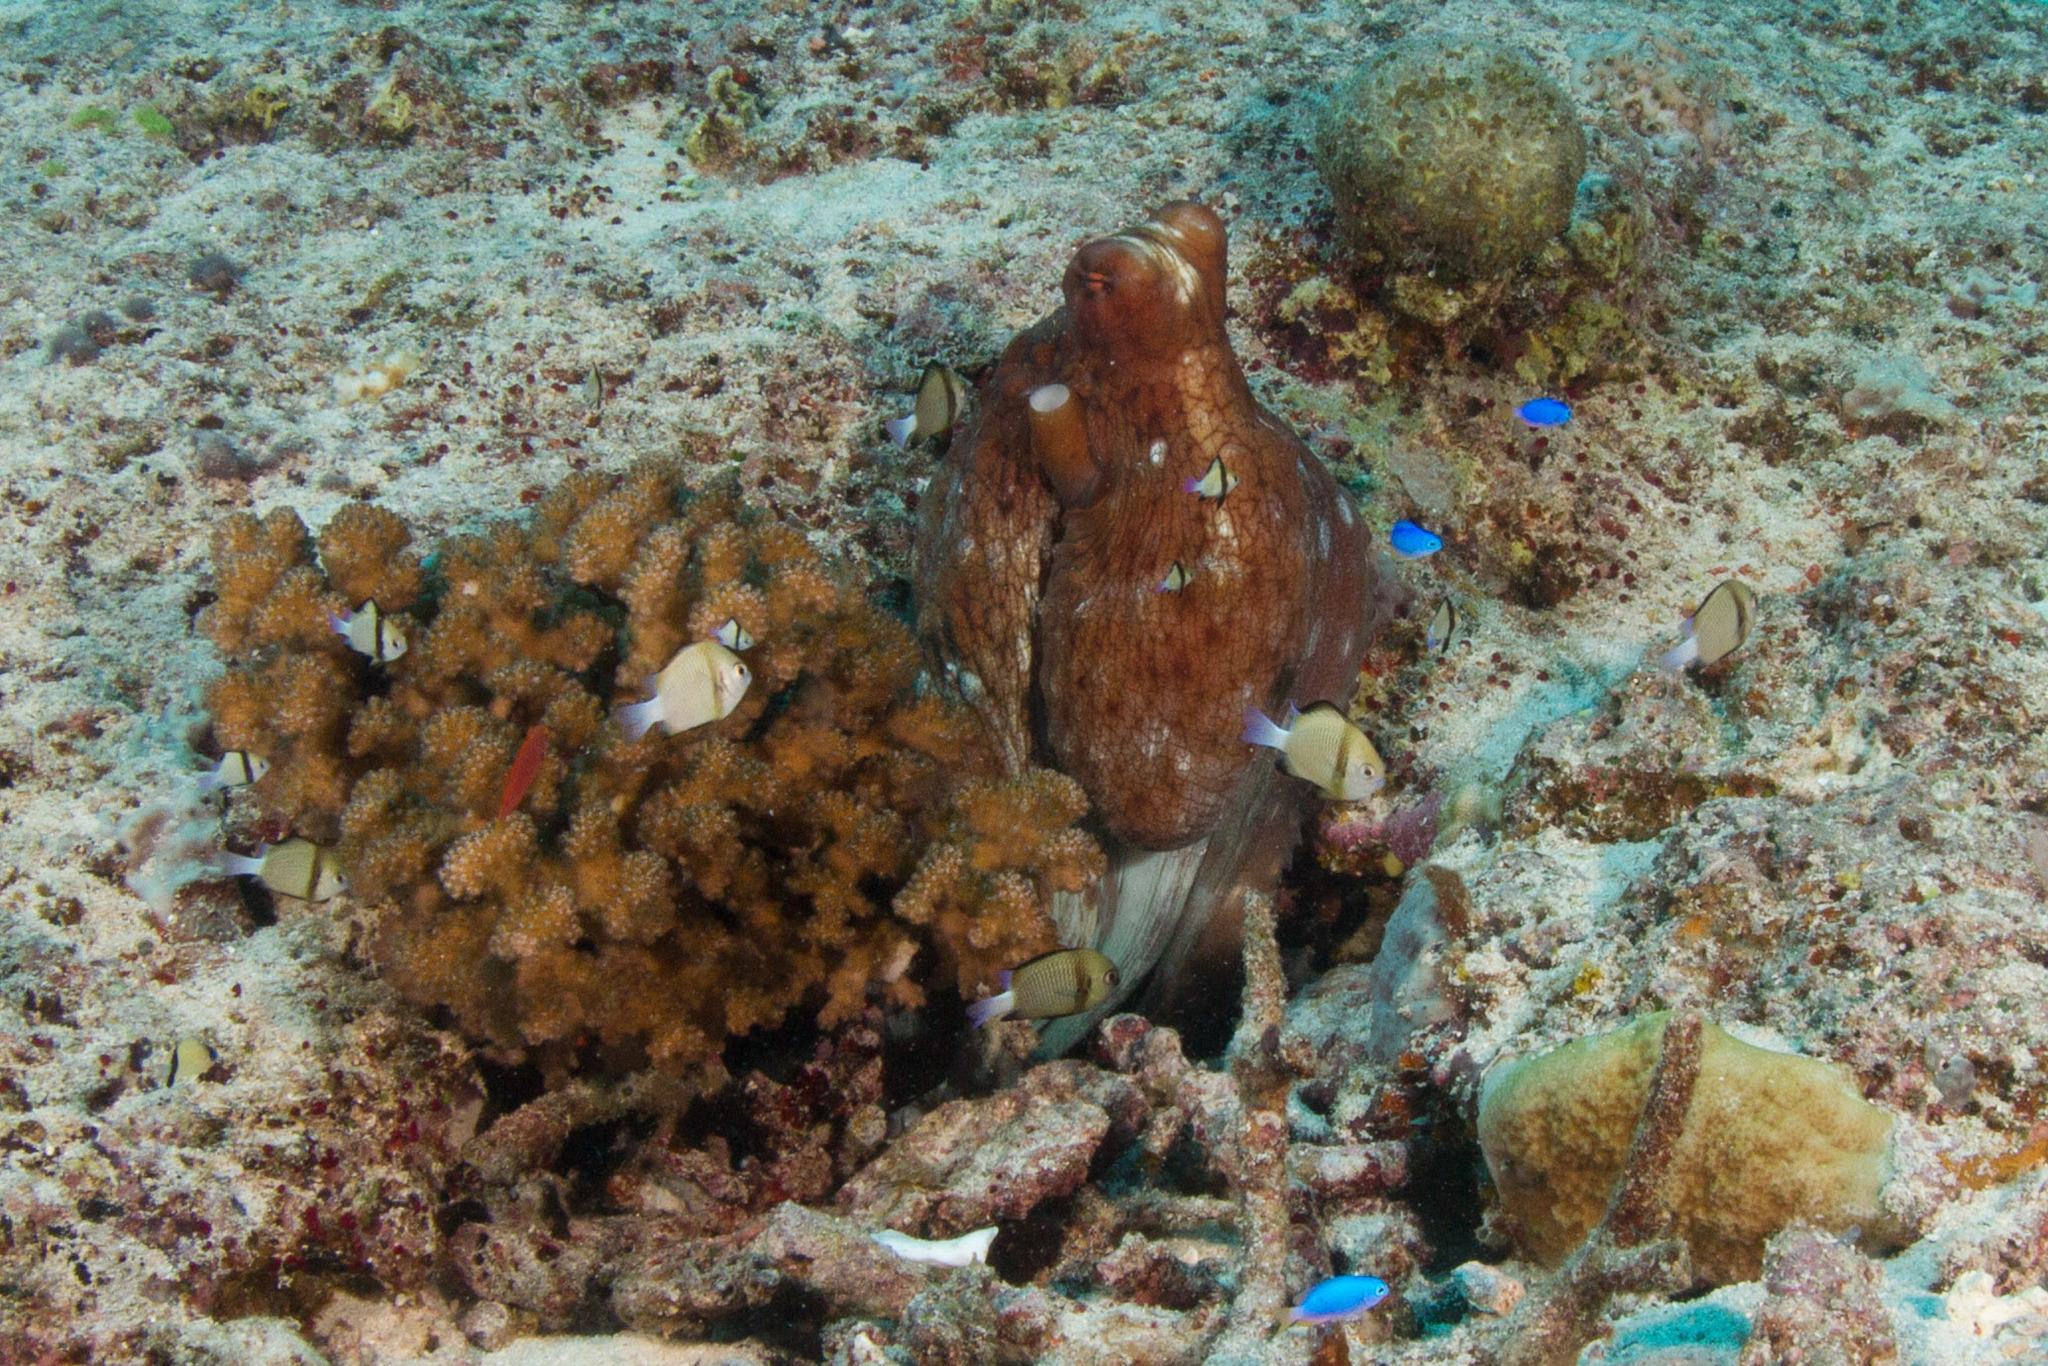 Image of Day octopus